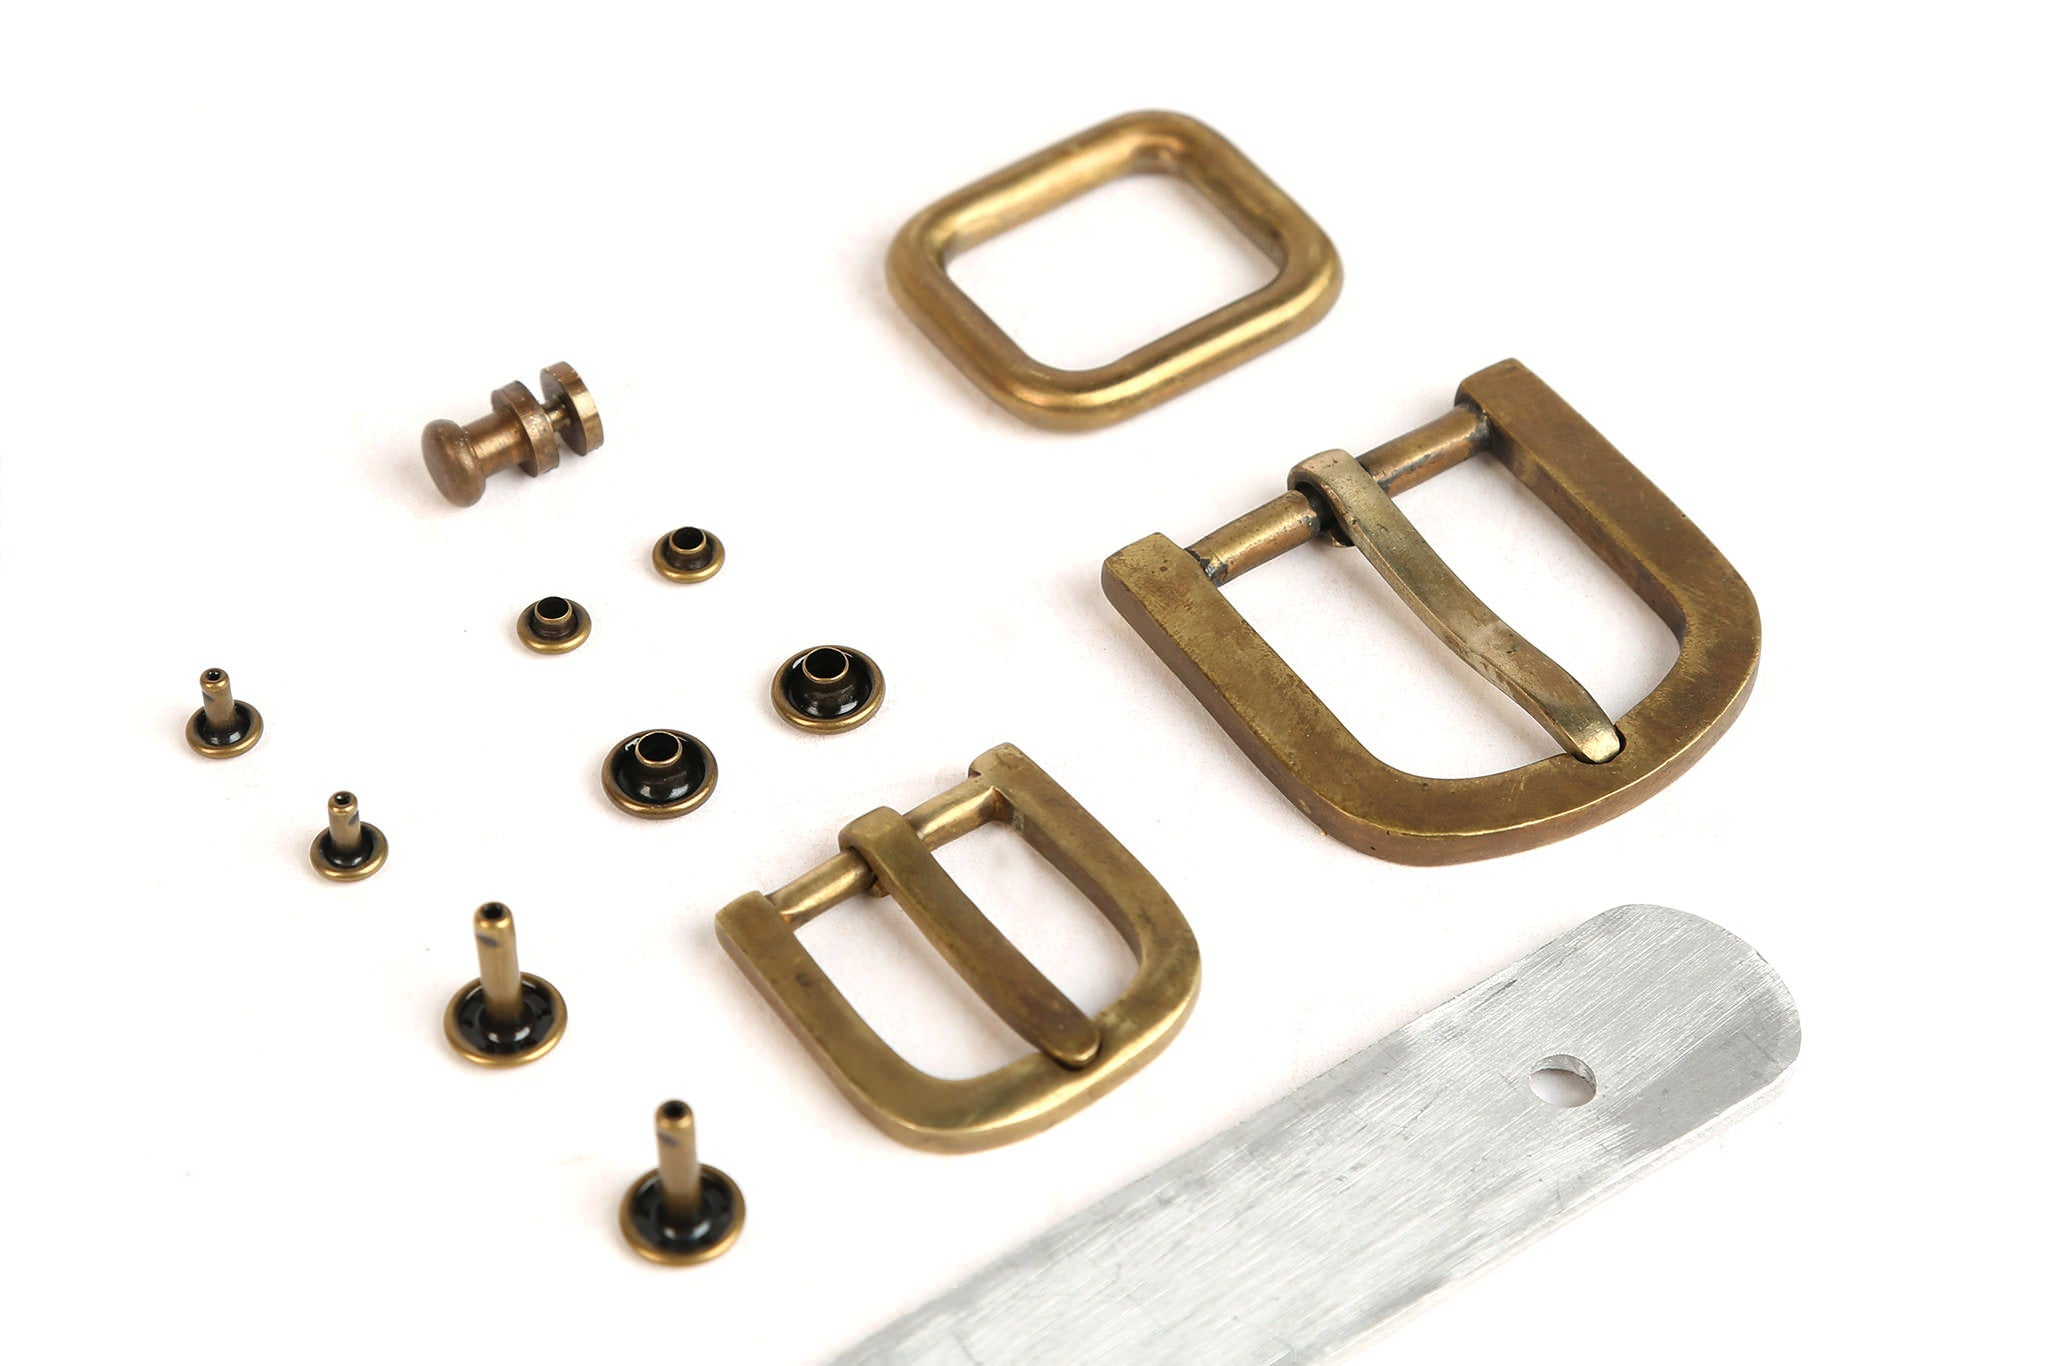 Solid brass and aluminum accessories with no moving parts,  nothing to break.